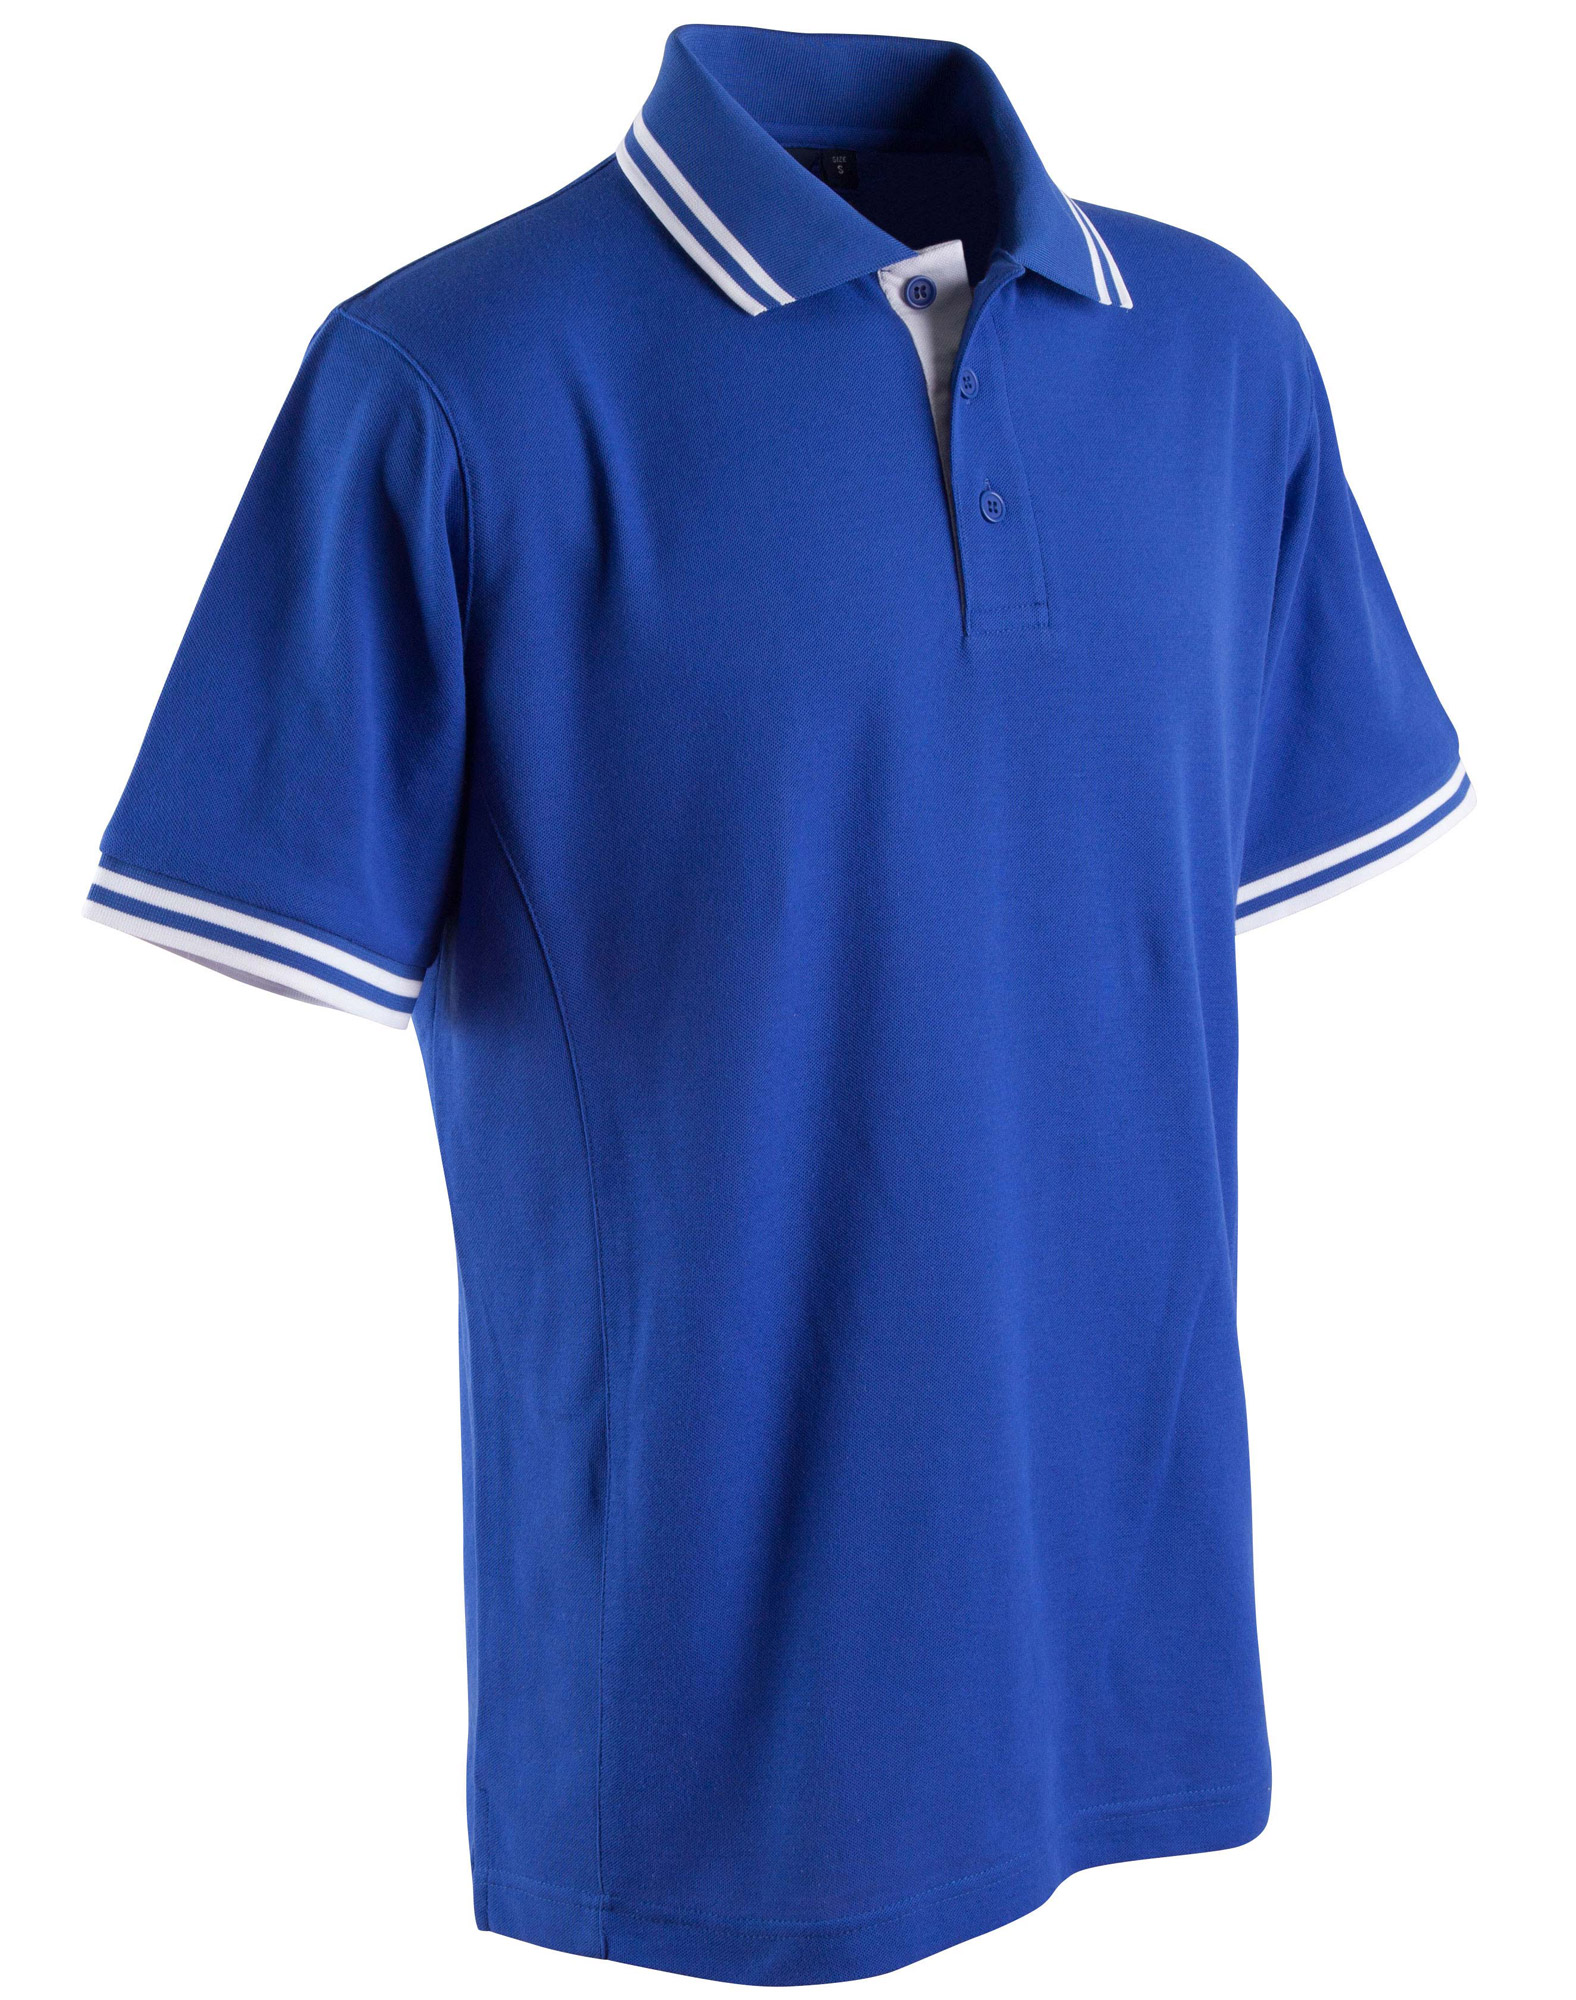 http://ws-imgs.s3.amazonaws.com/POLOSHIRTS/PS65_Royal.White_FrontSide_l.jpg